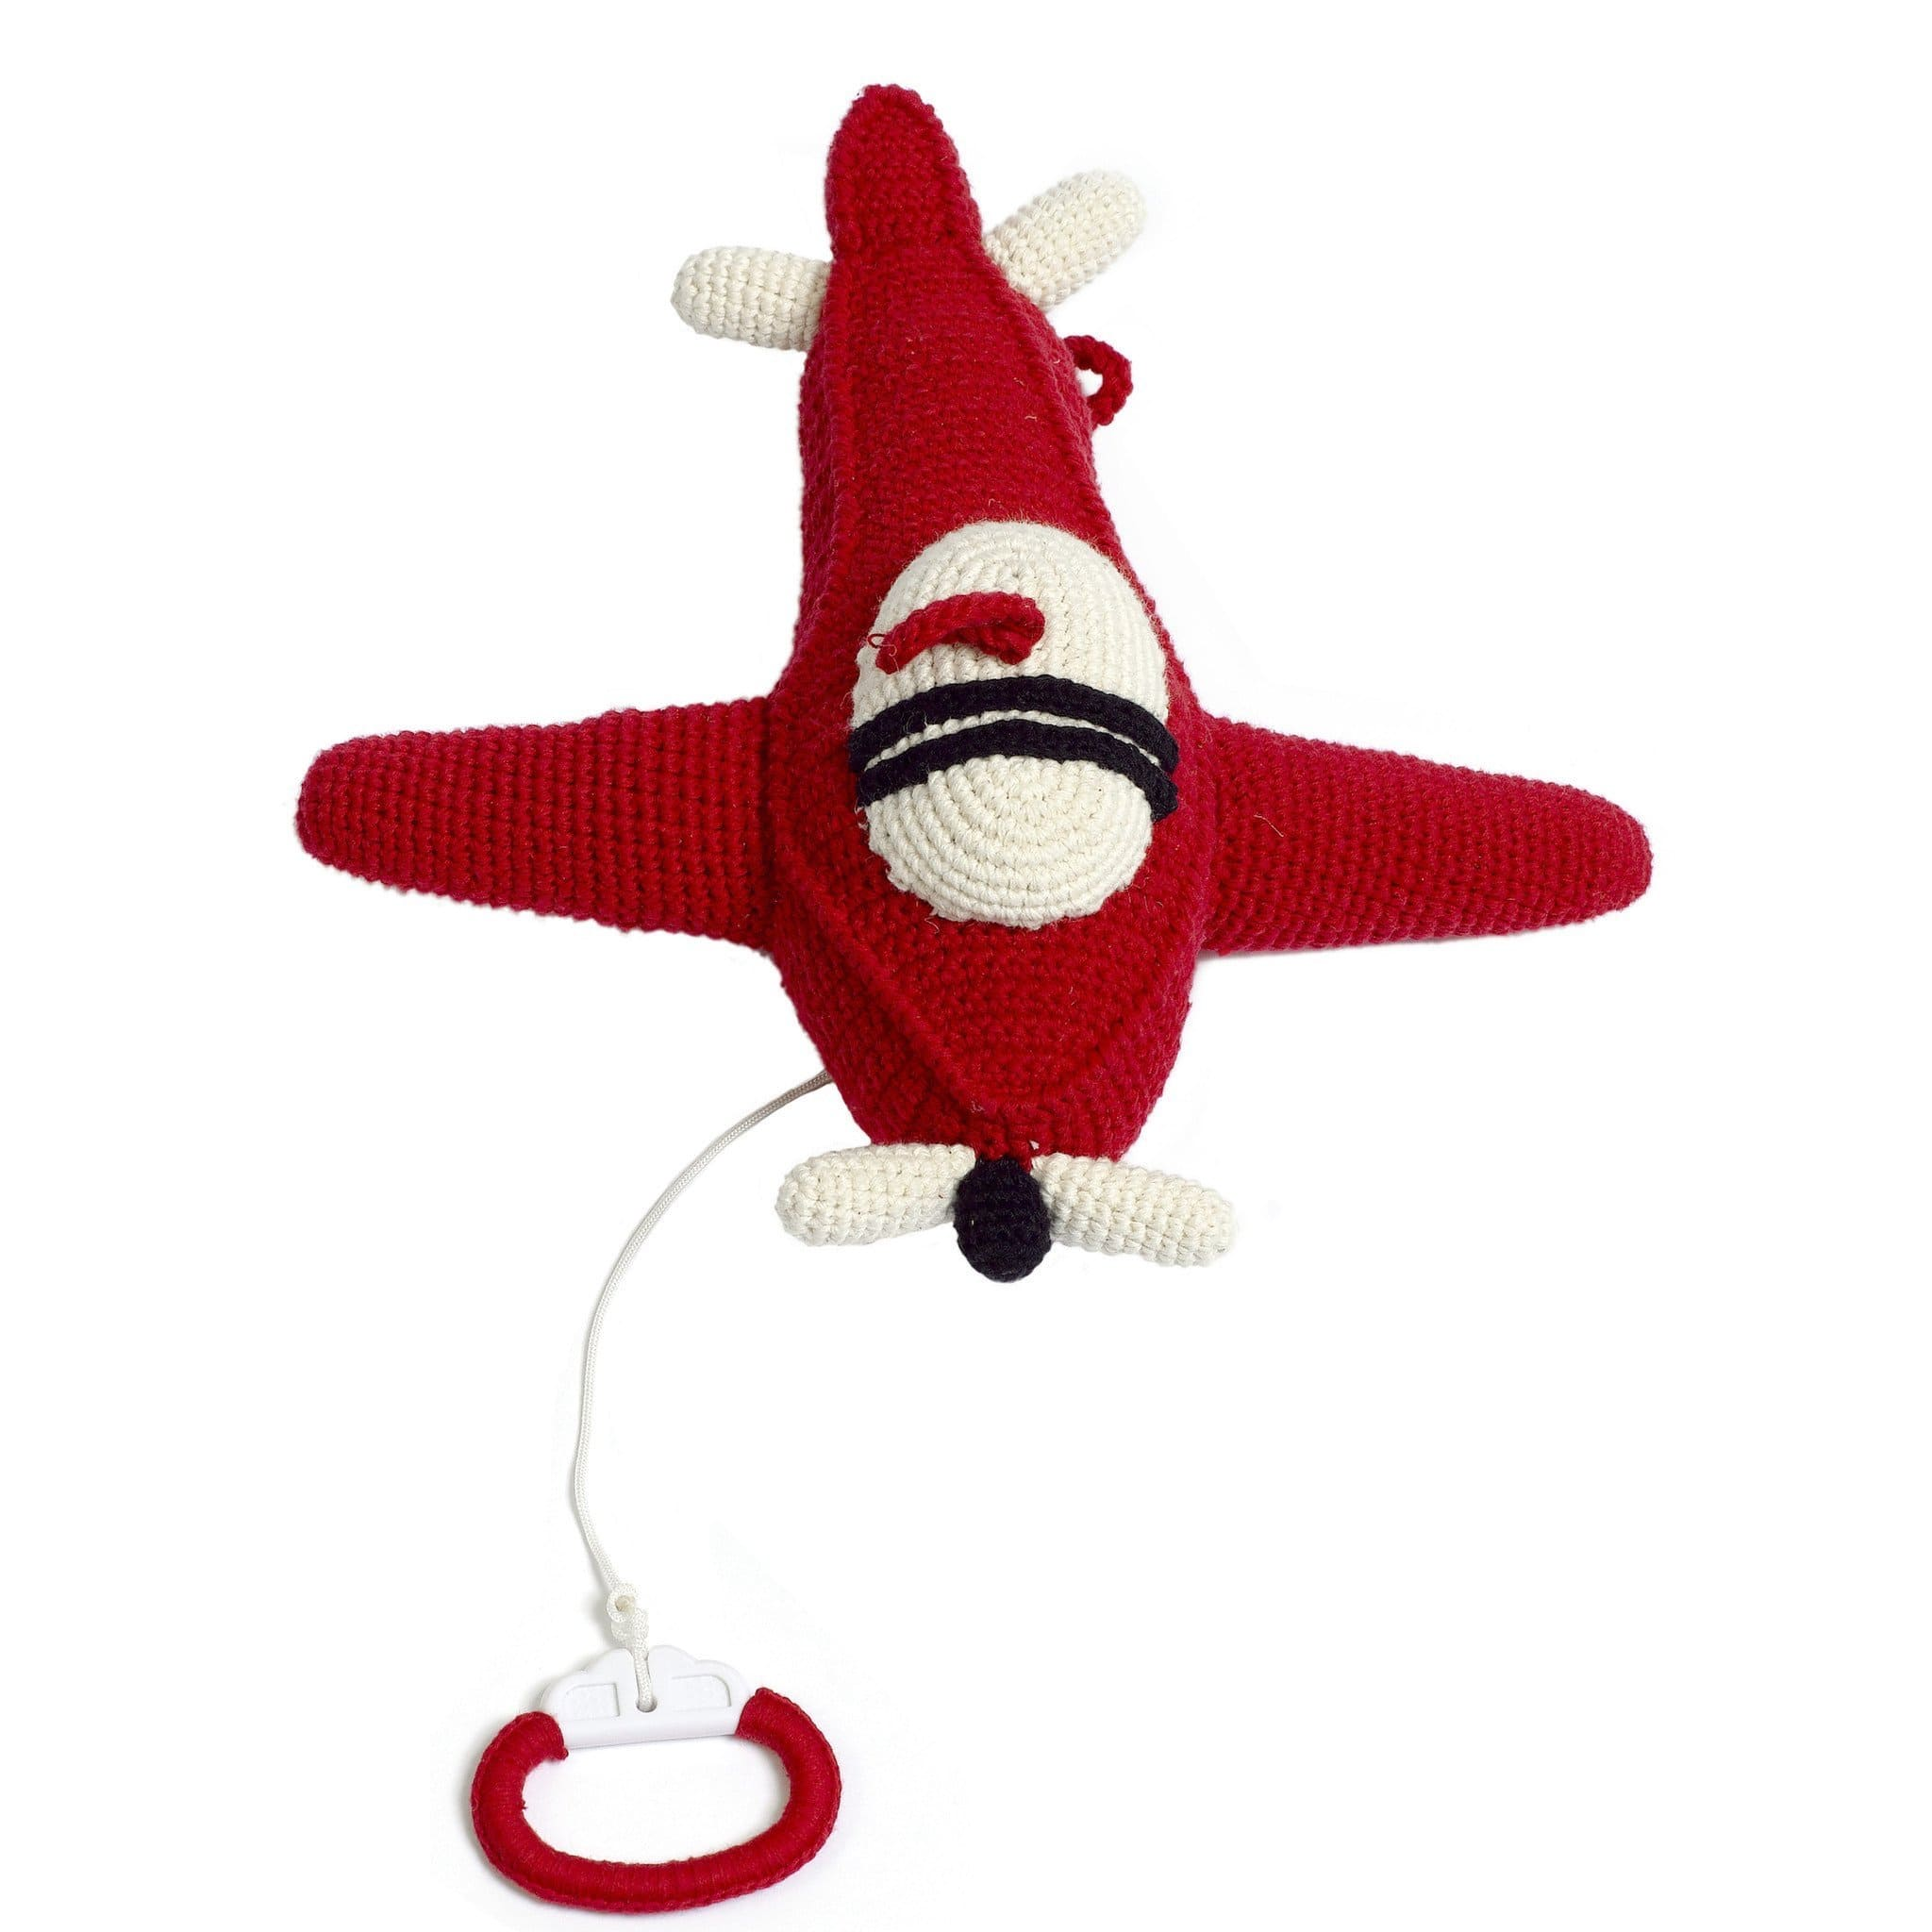 ORGANIC COTTON HANDMADE CROCHET AIRPLANE MUSIC BOX